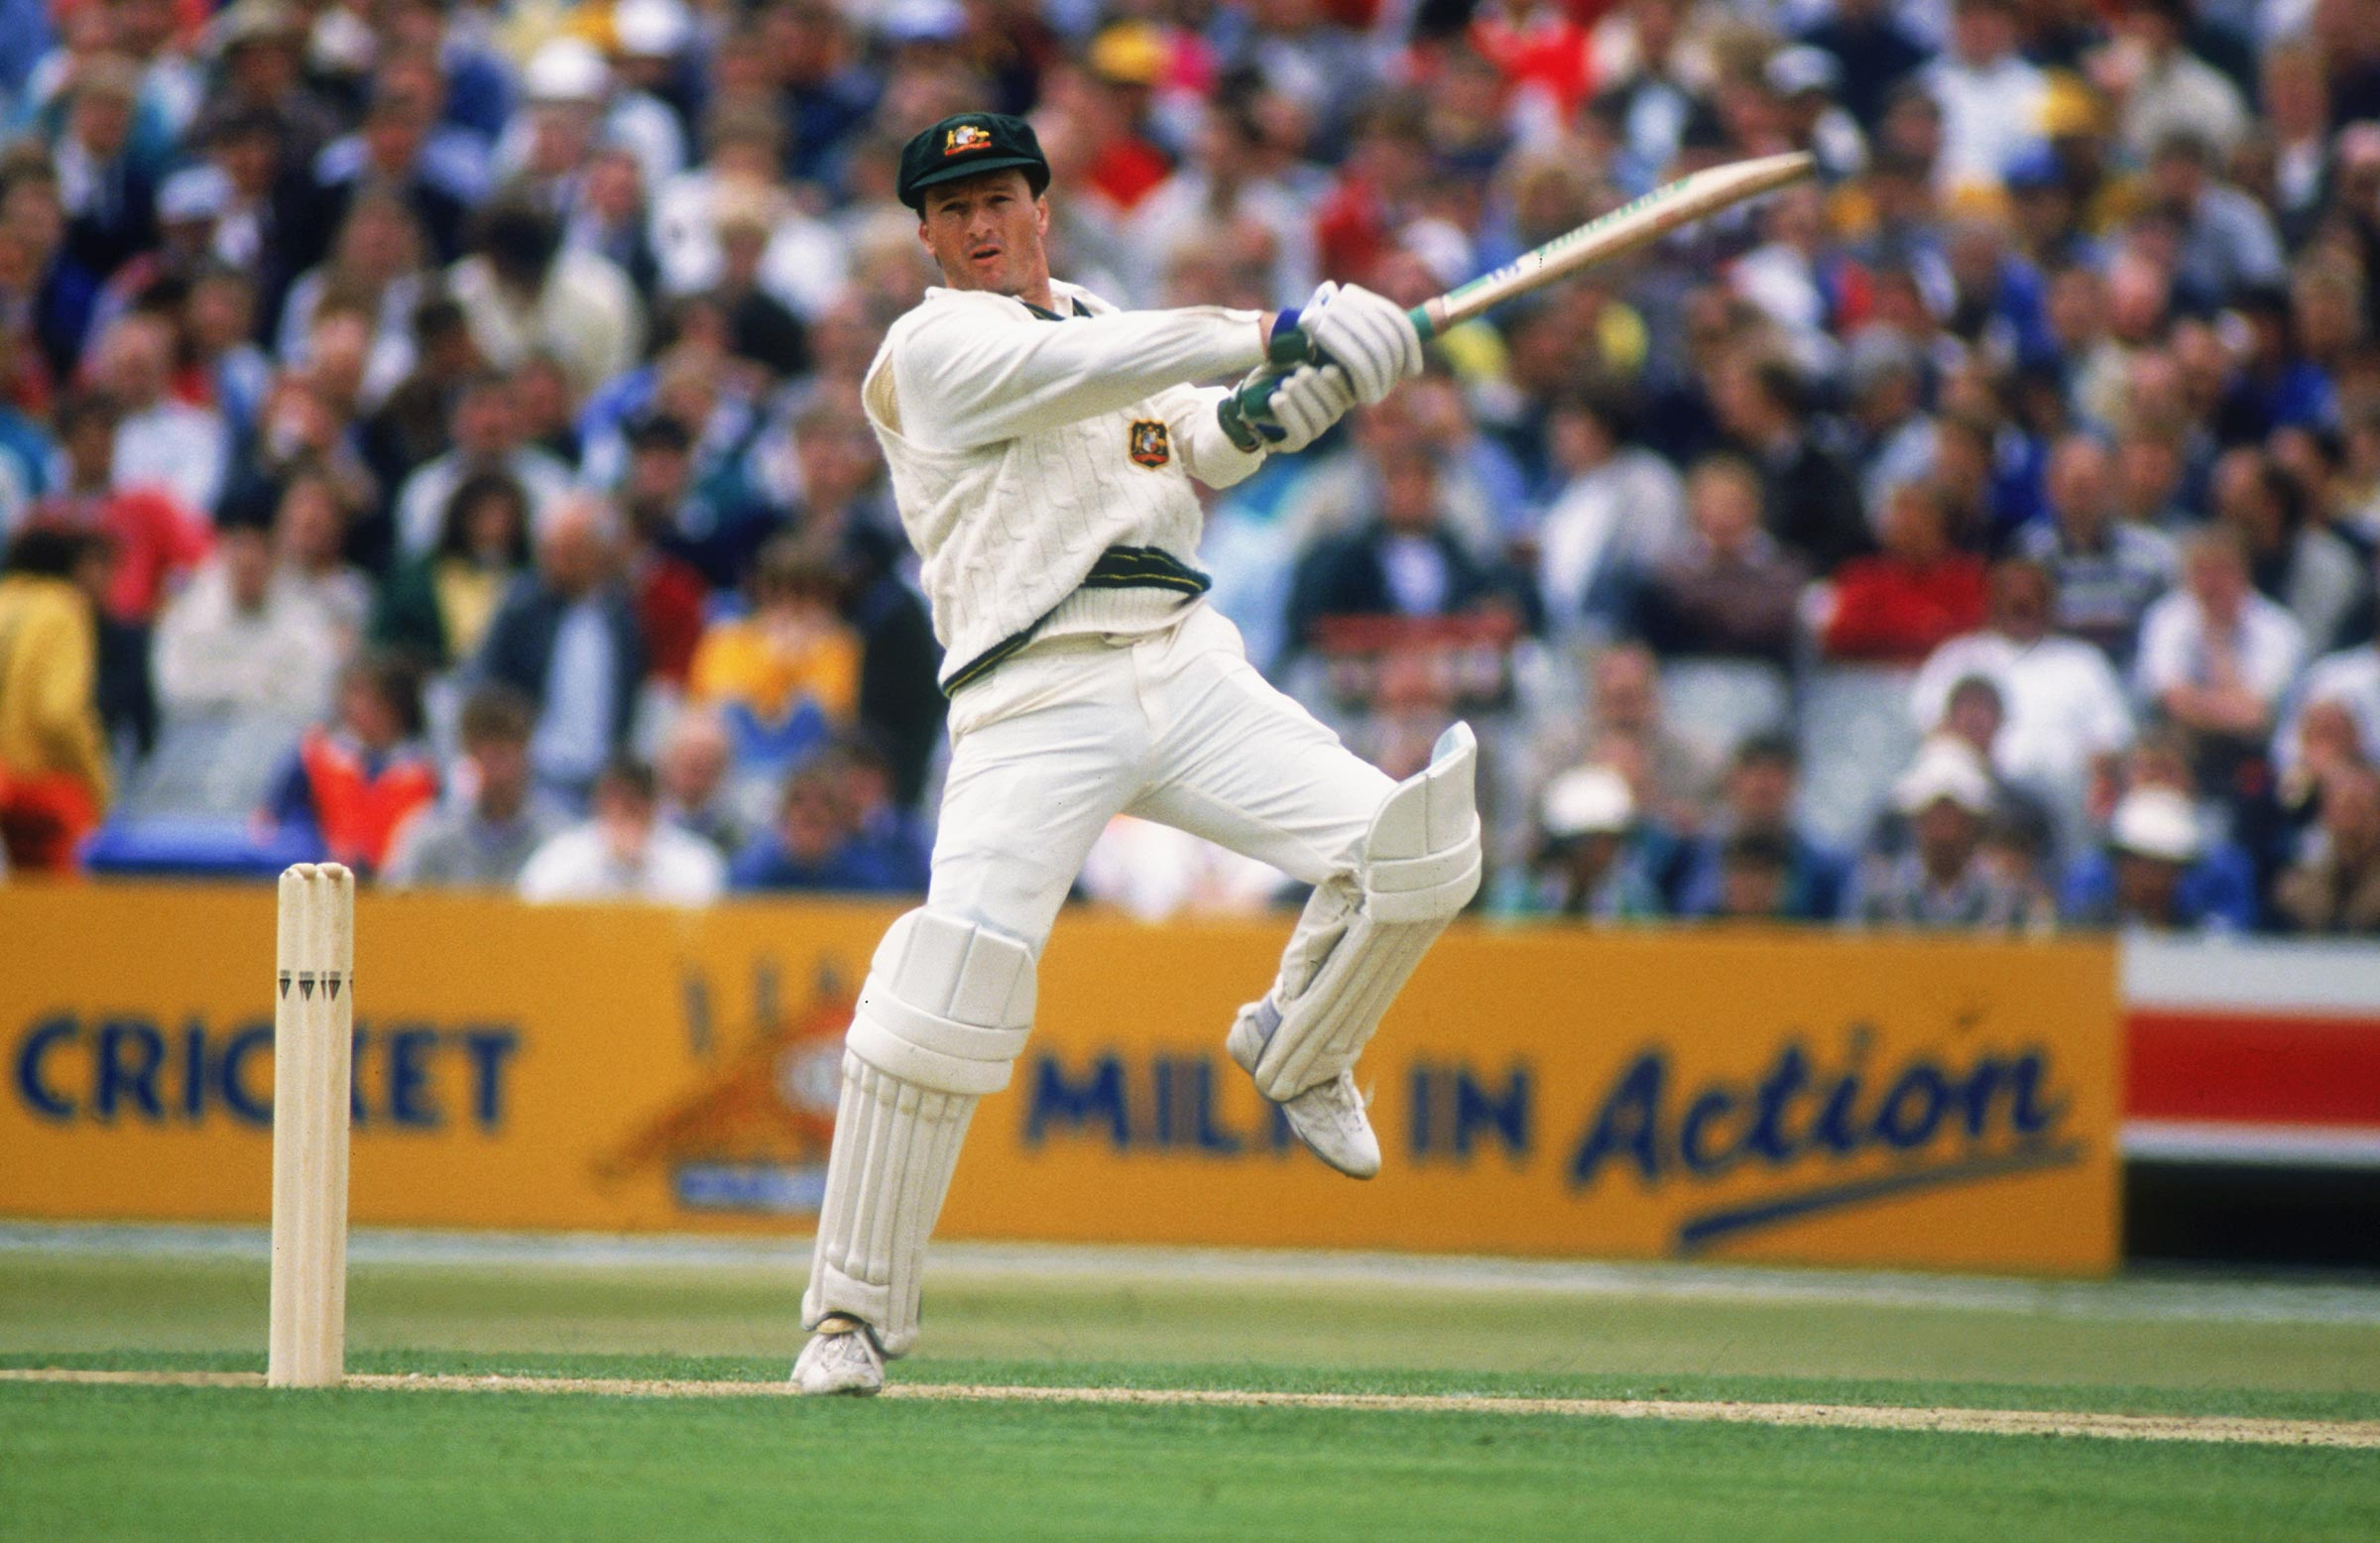 Steve Waugh had a breakout Ashes campaign // Getty